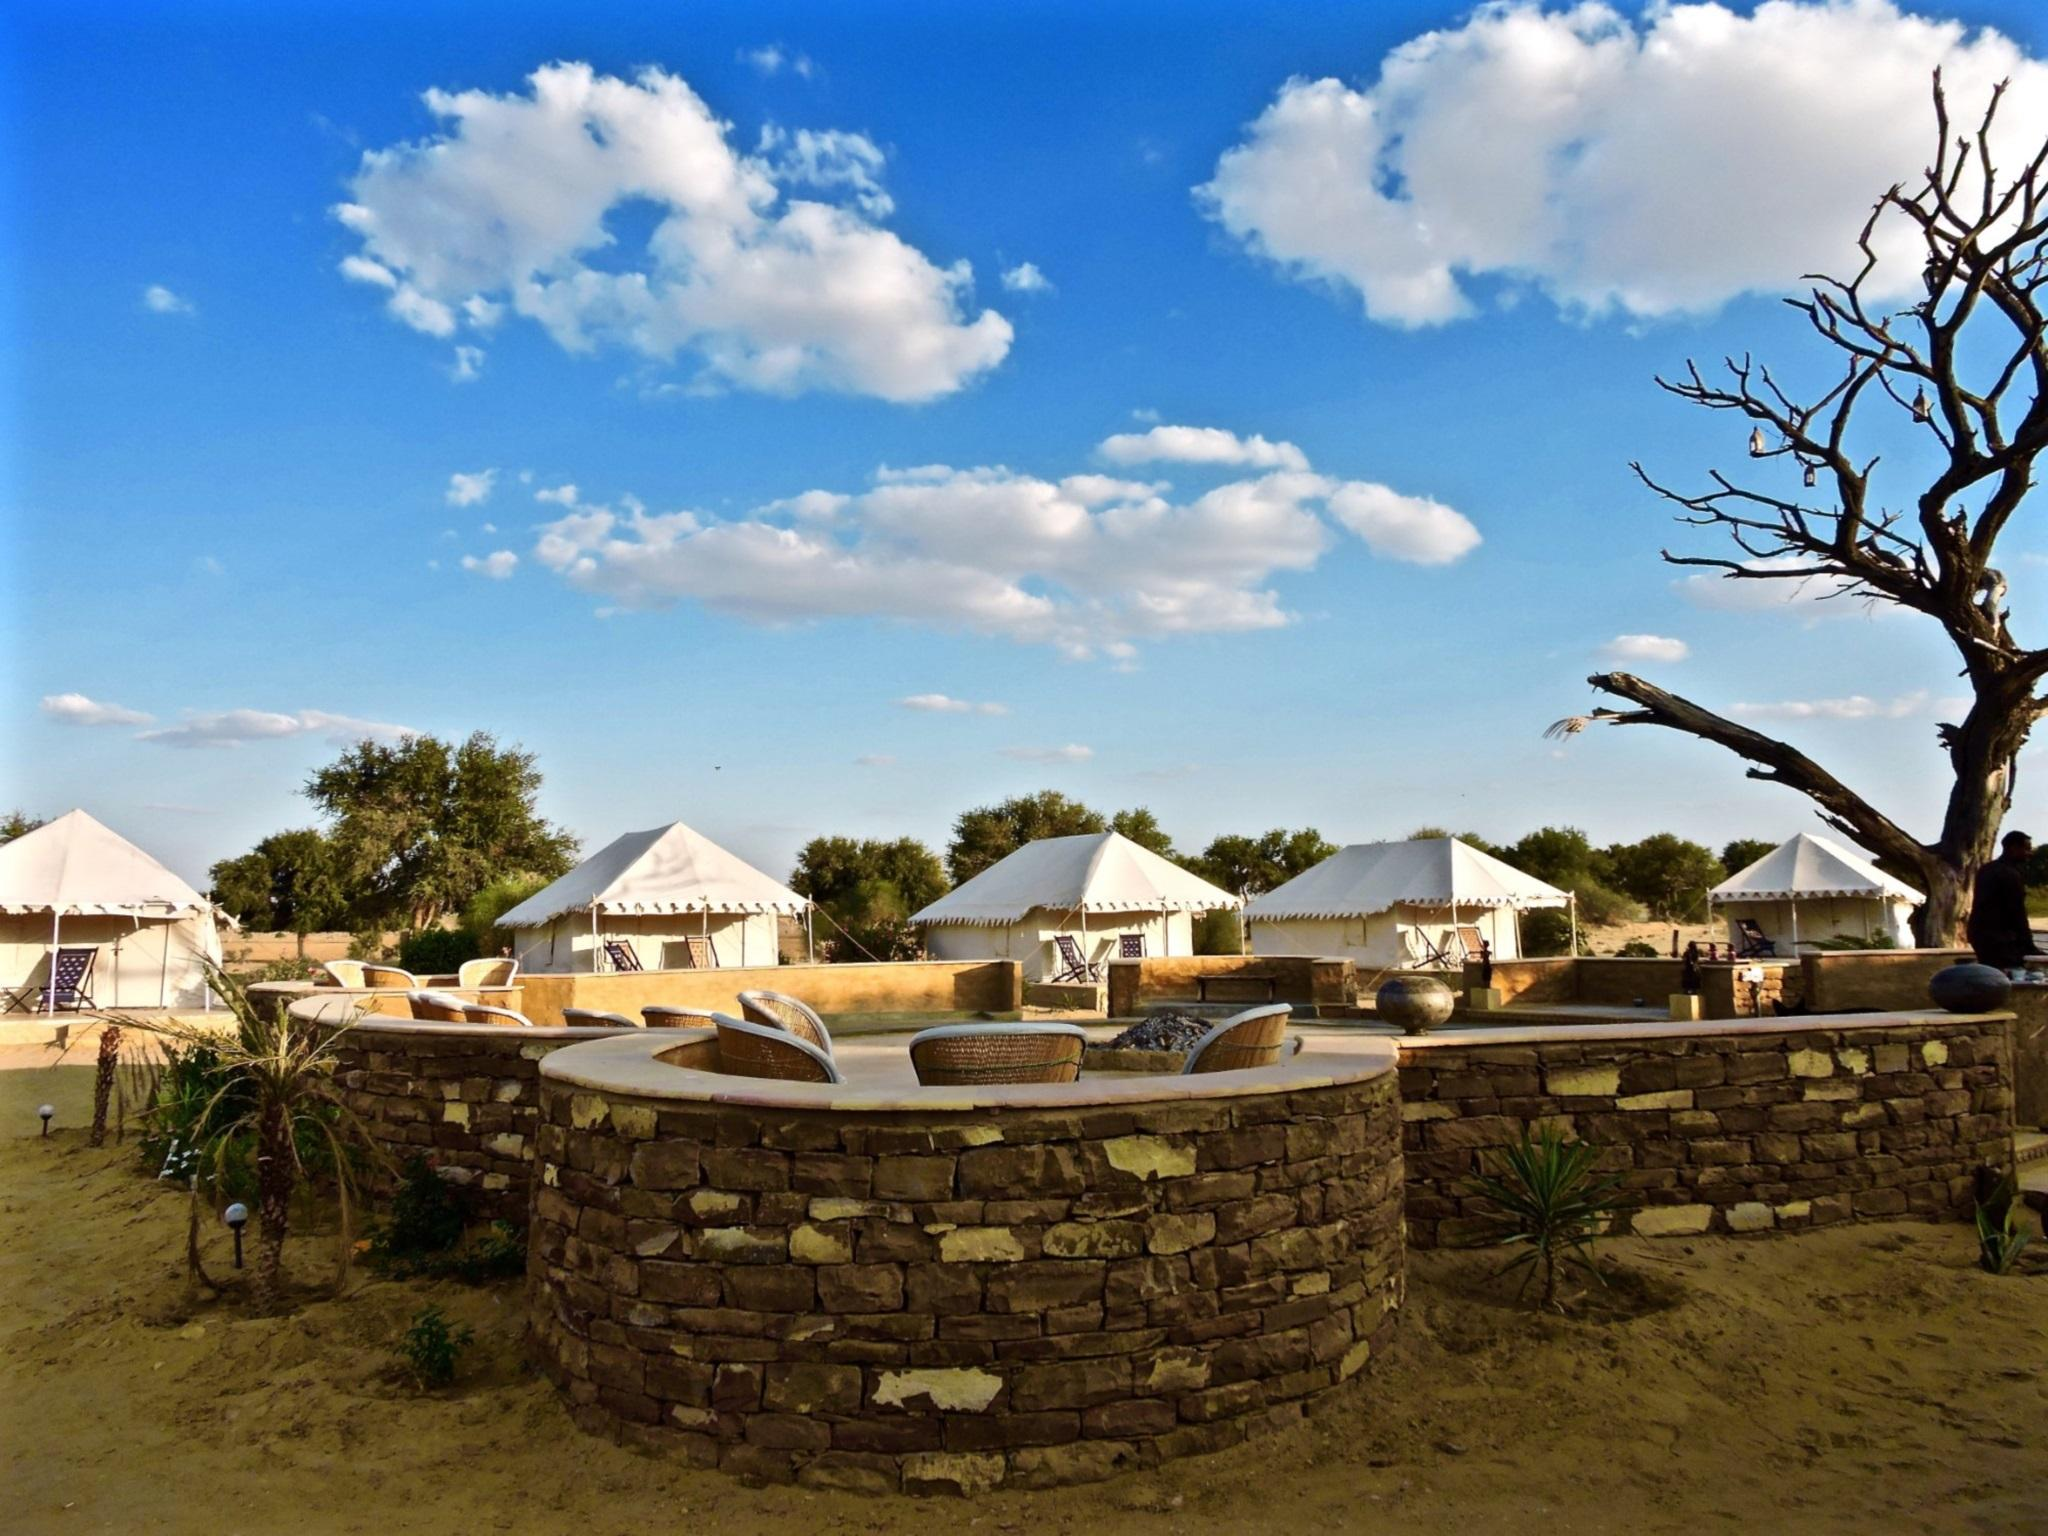 Damodra Desert Luxury Camp Tents | Jaisalmer 2020 UPDATED